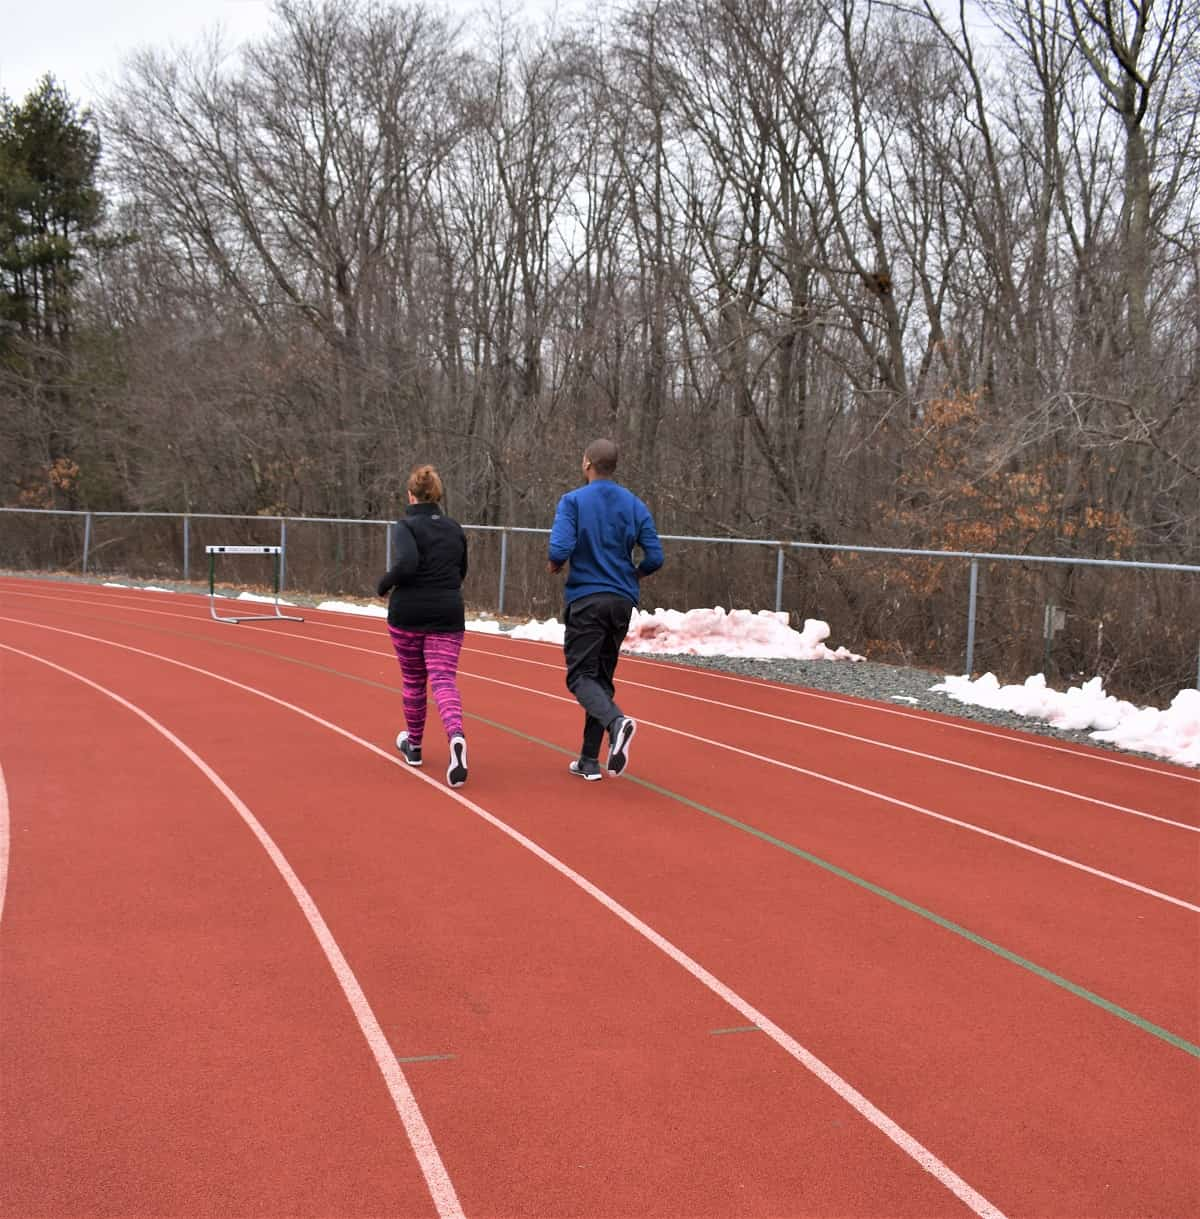 Couples running on a track in the winter